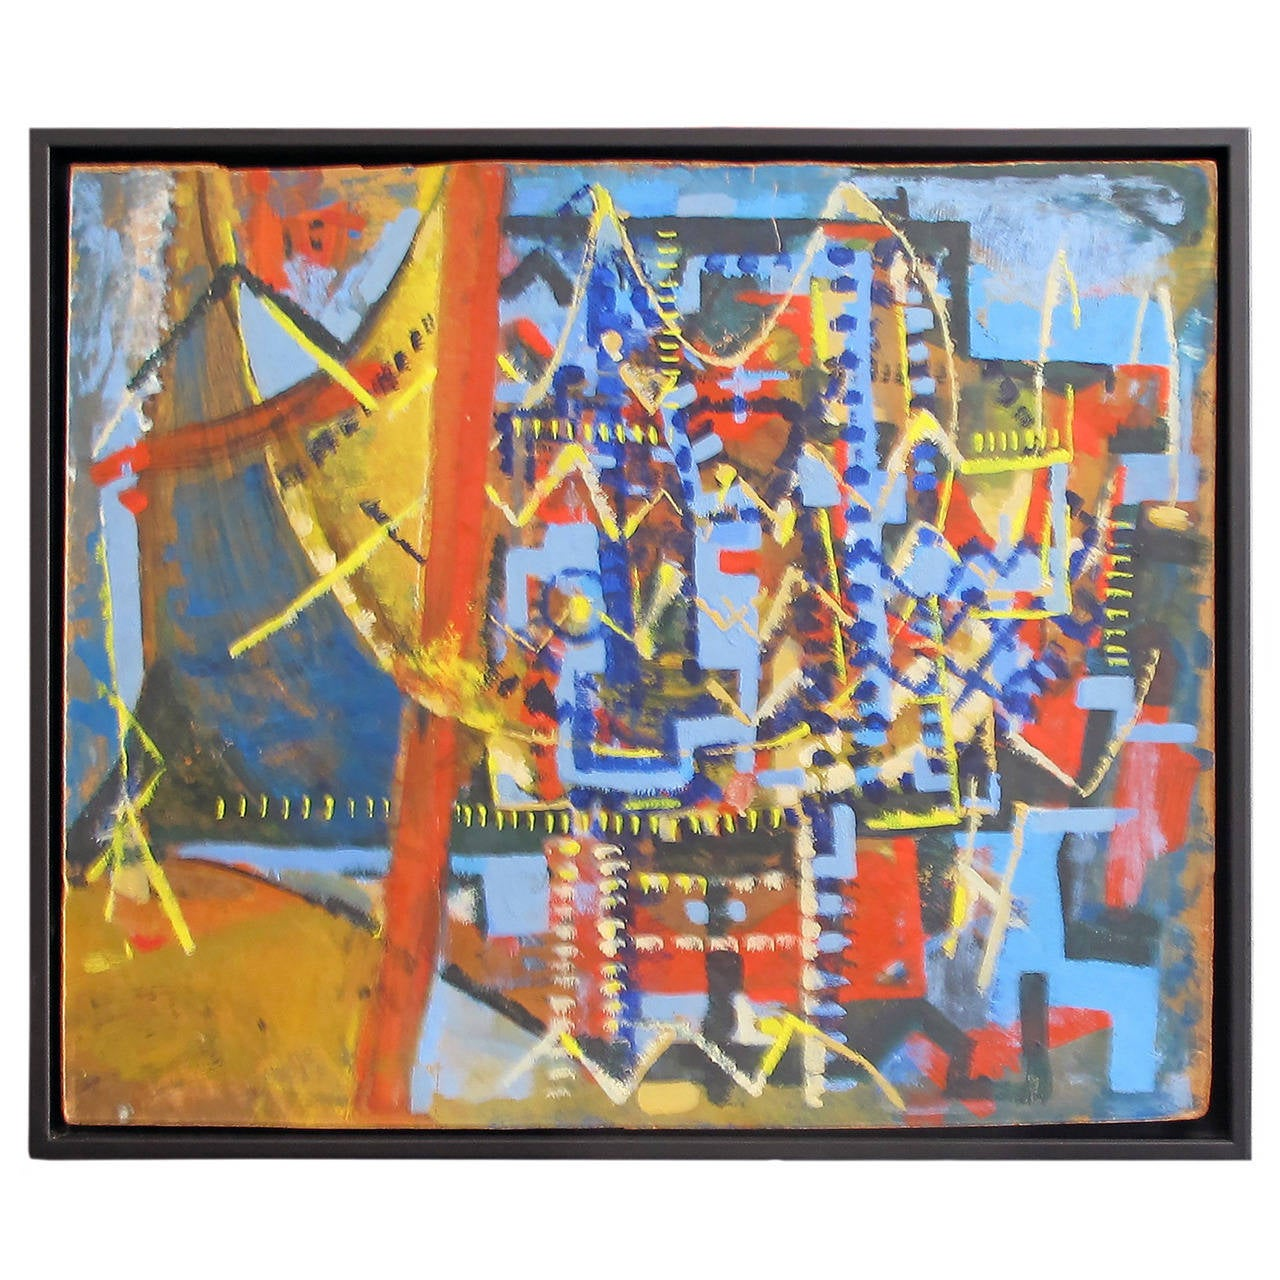 Mid-Century Geometric Abstract Oil Painting in Blue, Red and Yellow on Masonite 1